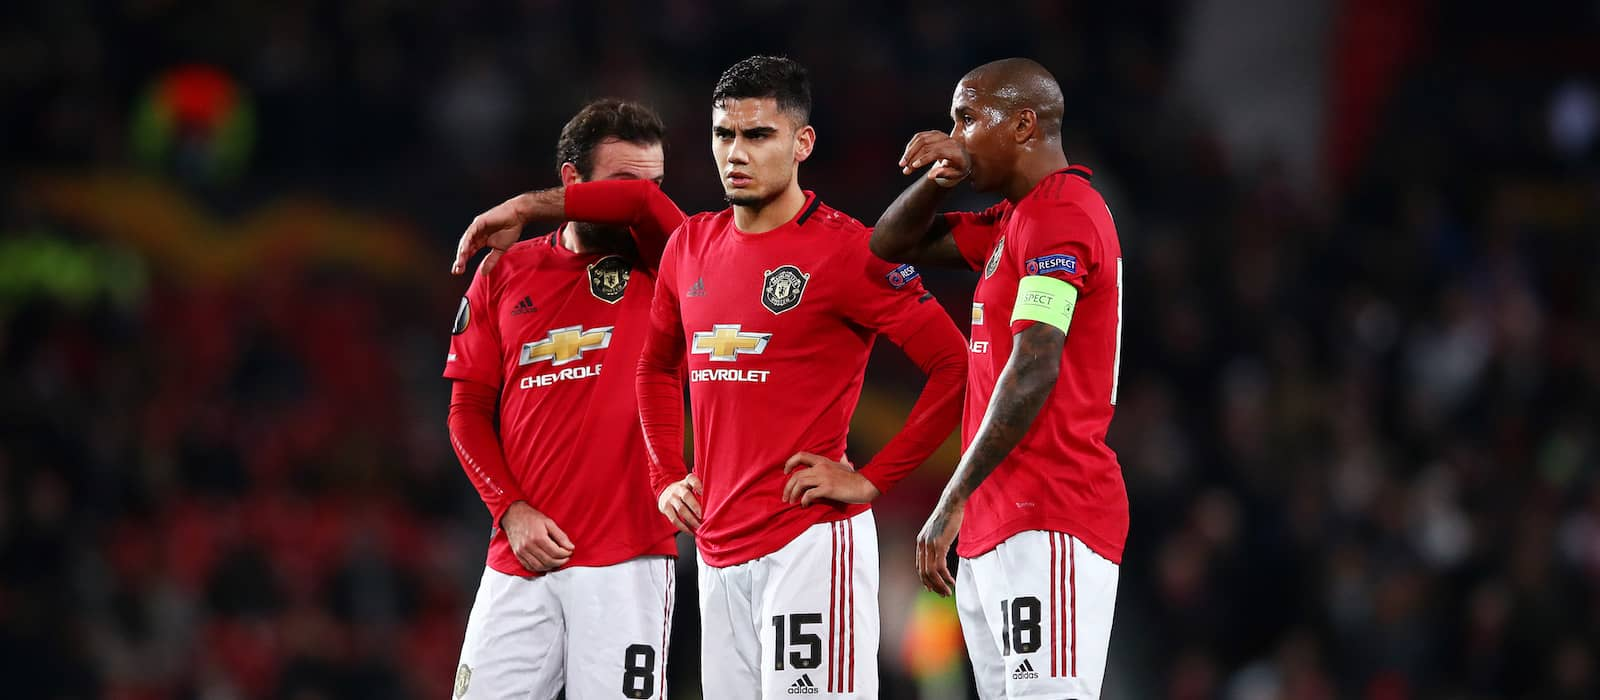 Five things we learned from Manchester United's 4-0 win over AZ Alkmaar